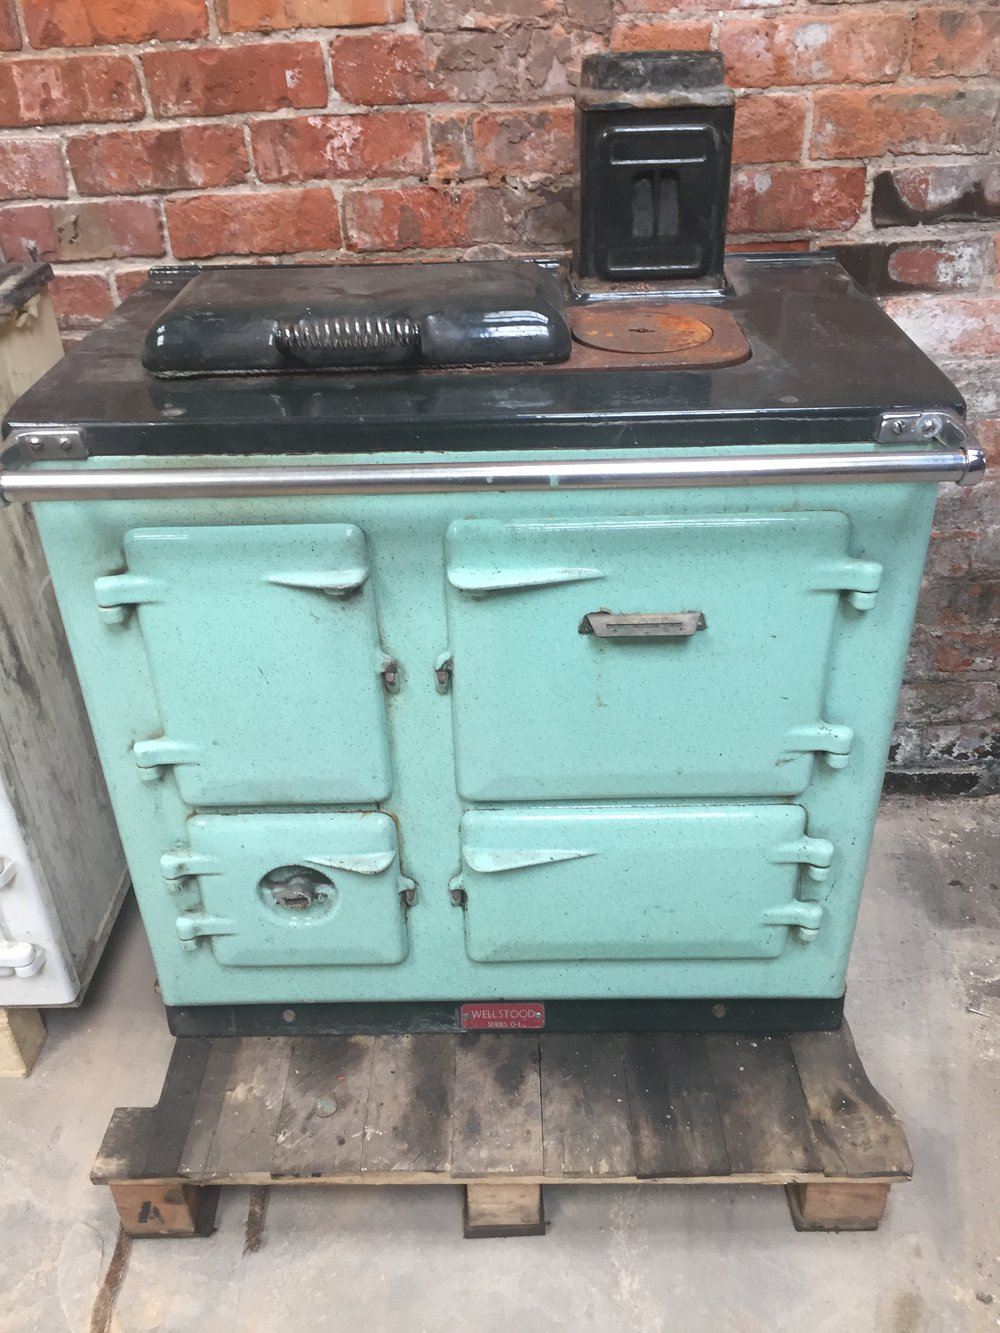 An old Wellstood cooker, not many of these left now.